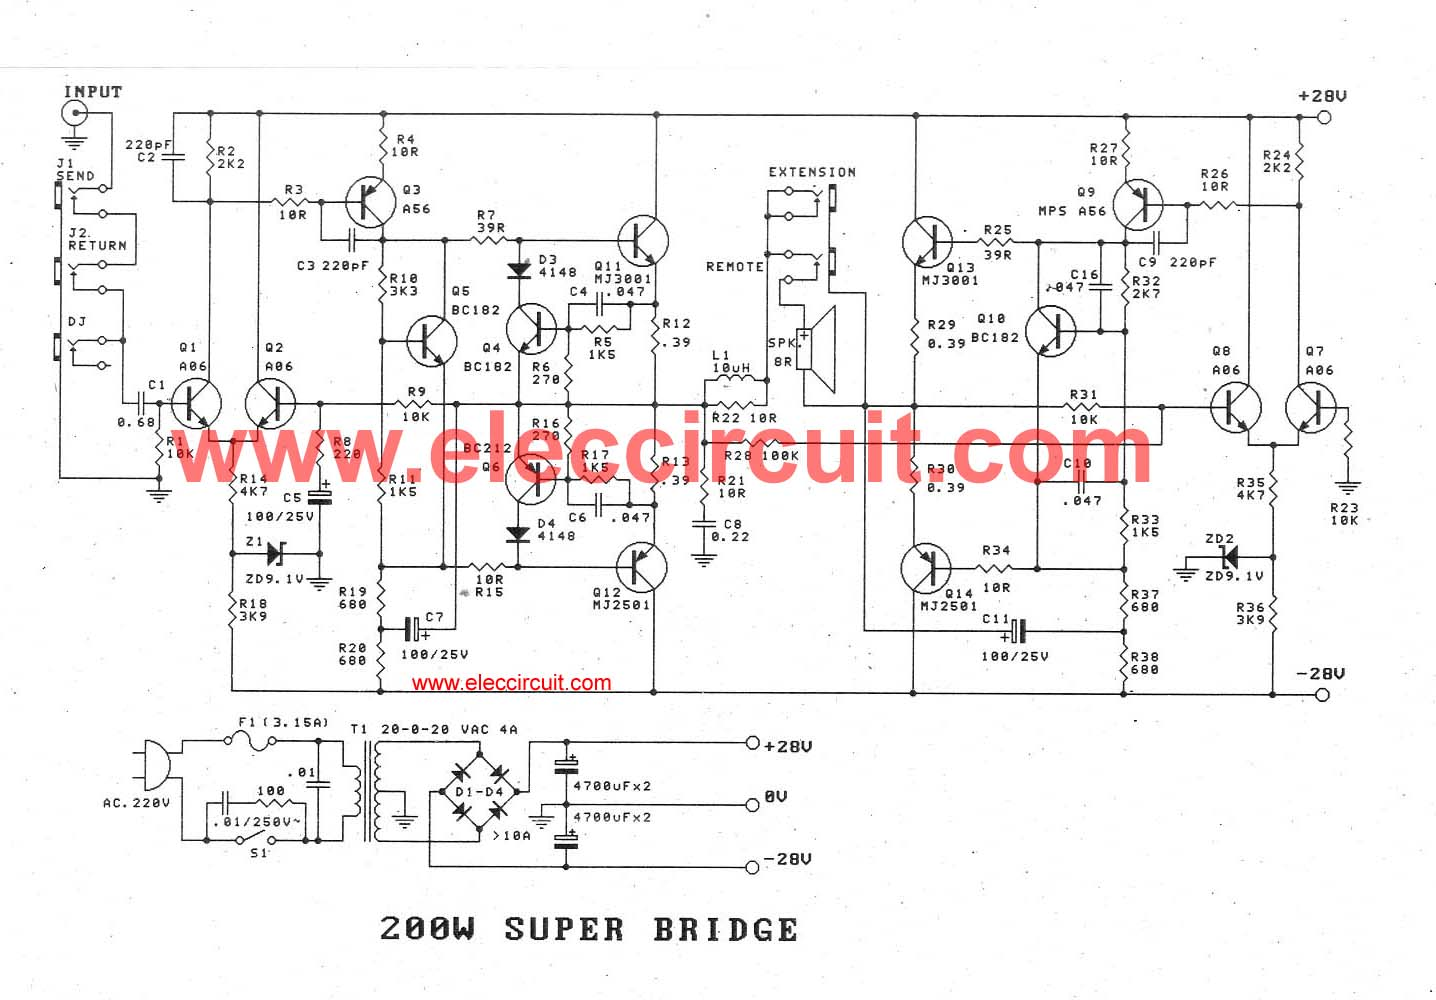 hight resolution of 200w guitar amplifier circuit diagram with pcb layout bass guitar super bridge amplifier 200 watt